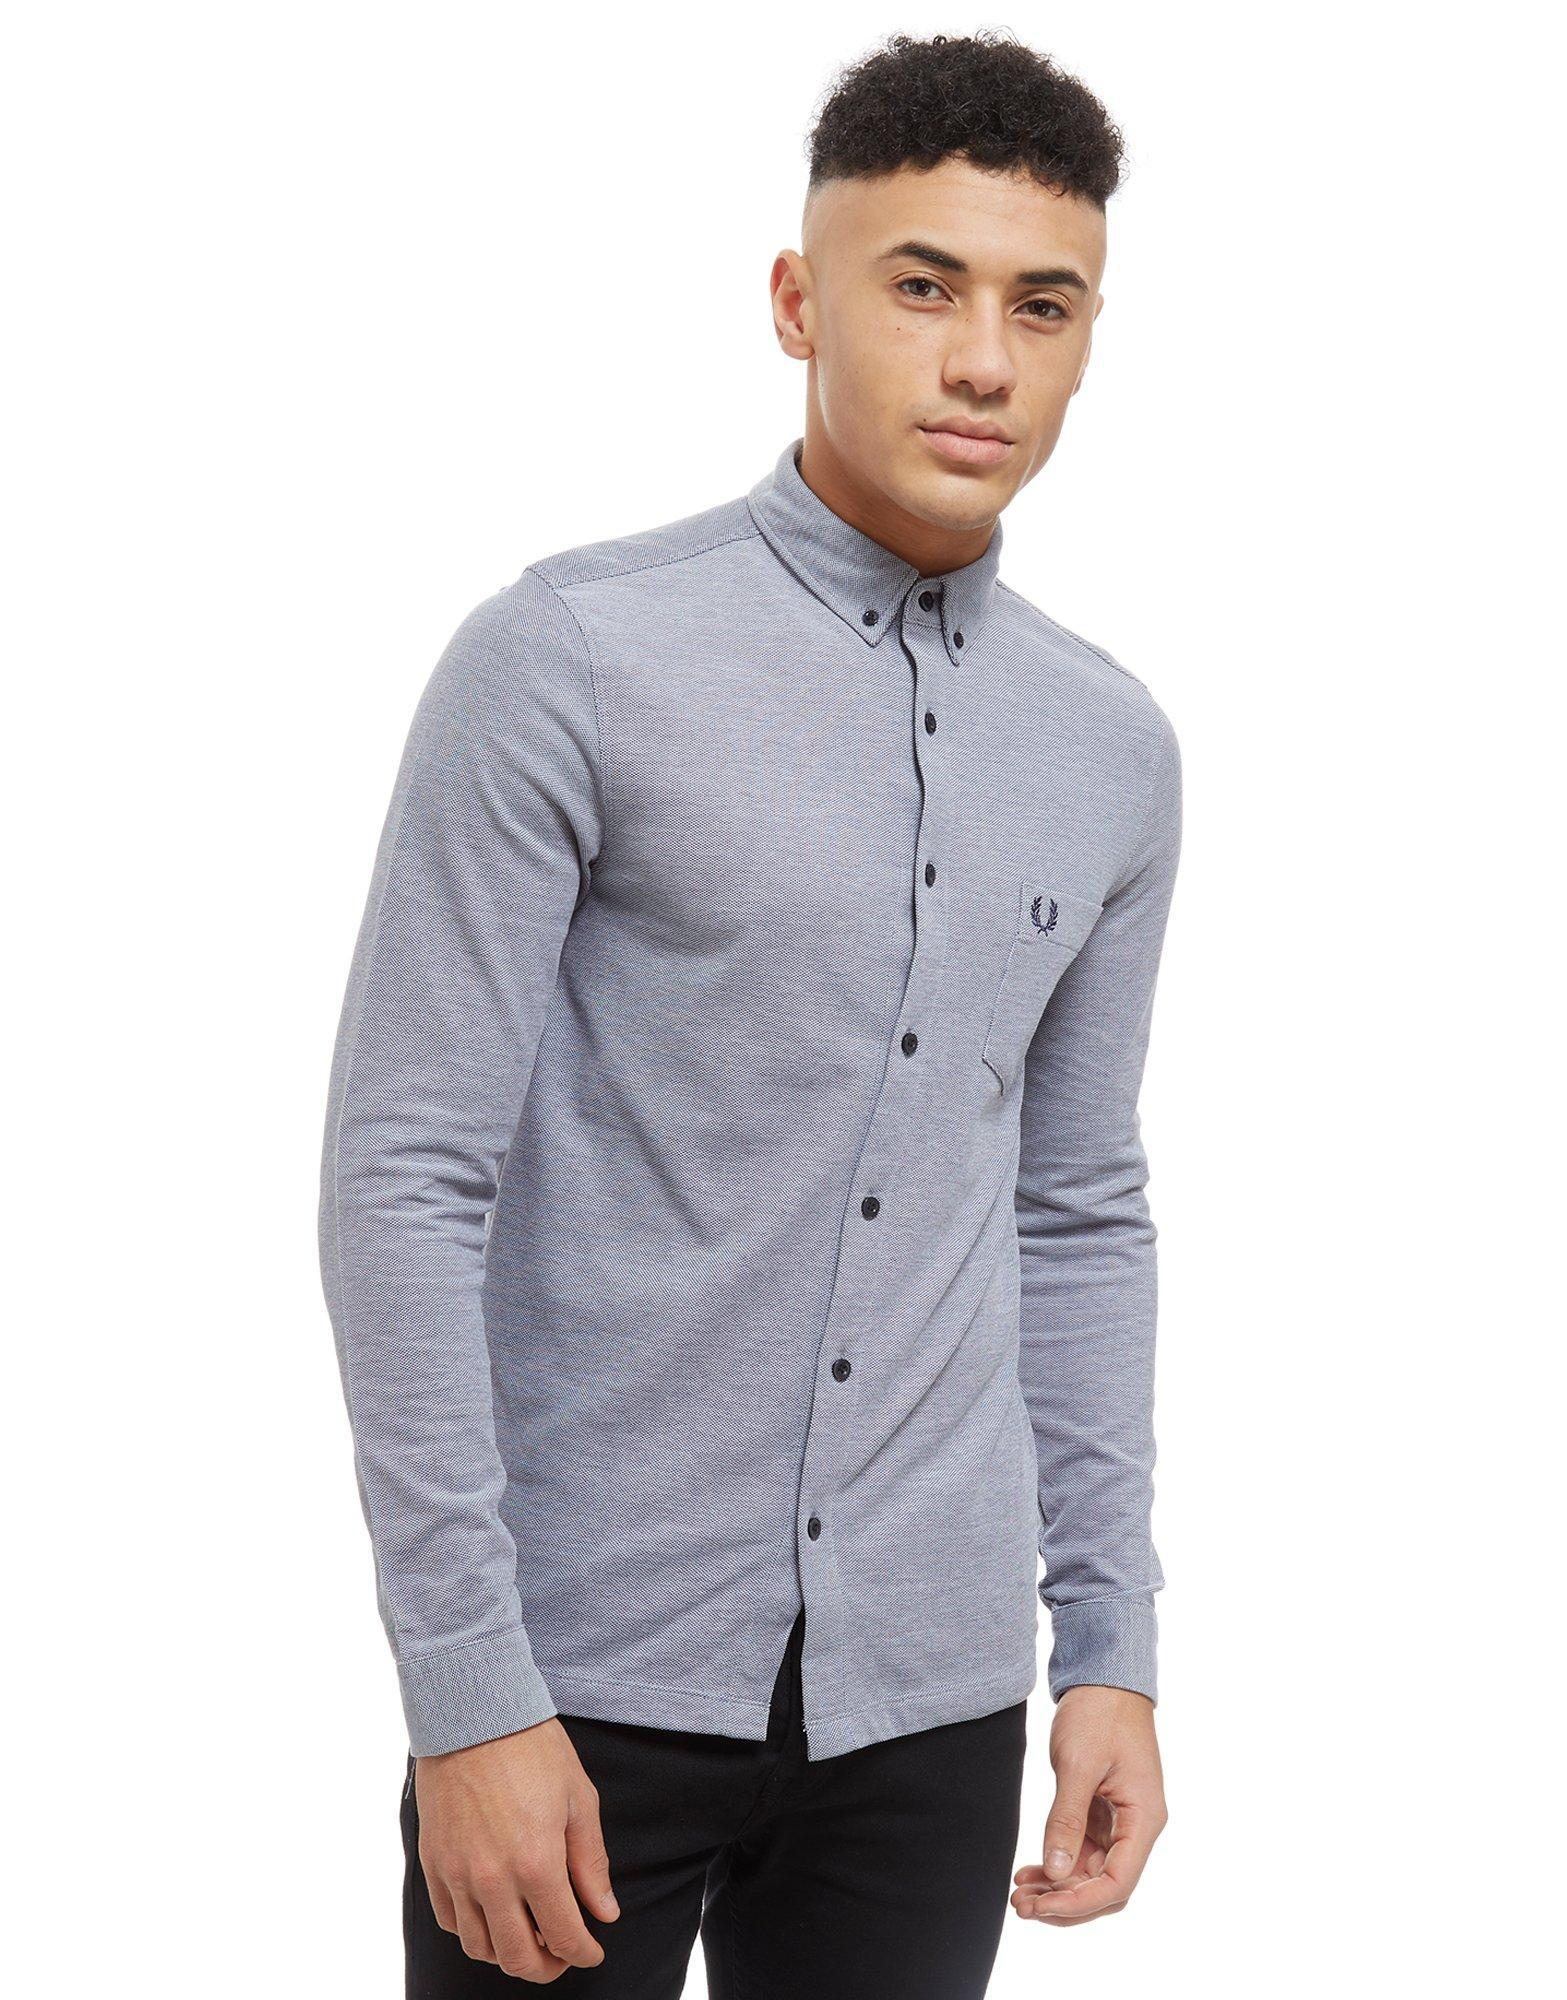 b556fbe5 Fred Perry Oxford Pique Long Sleeve Shirt in Blue for Men - Lyst